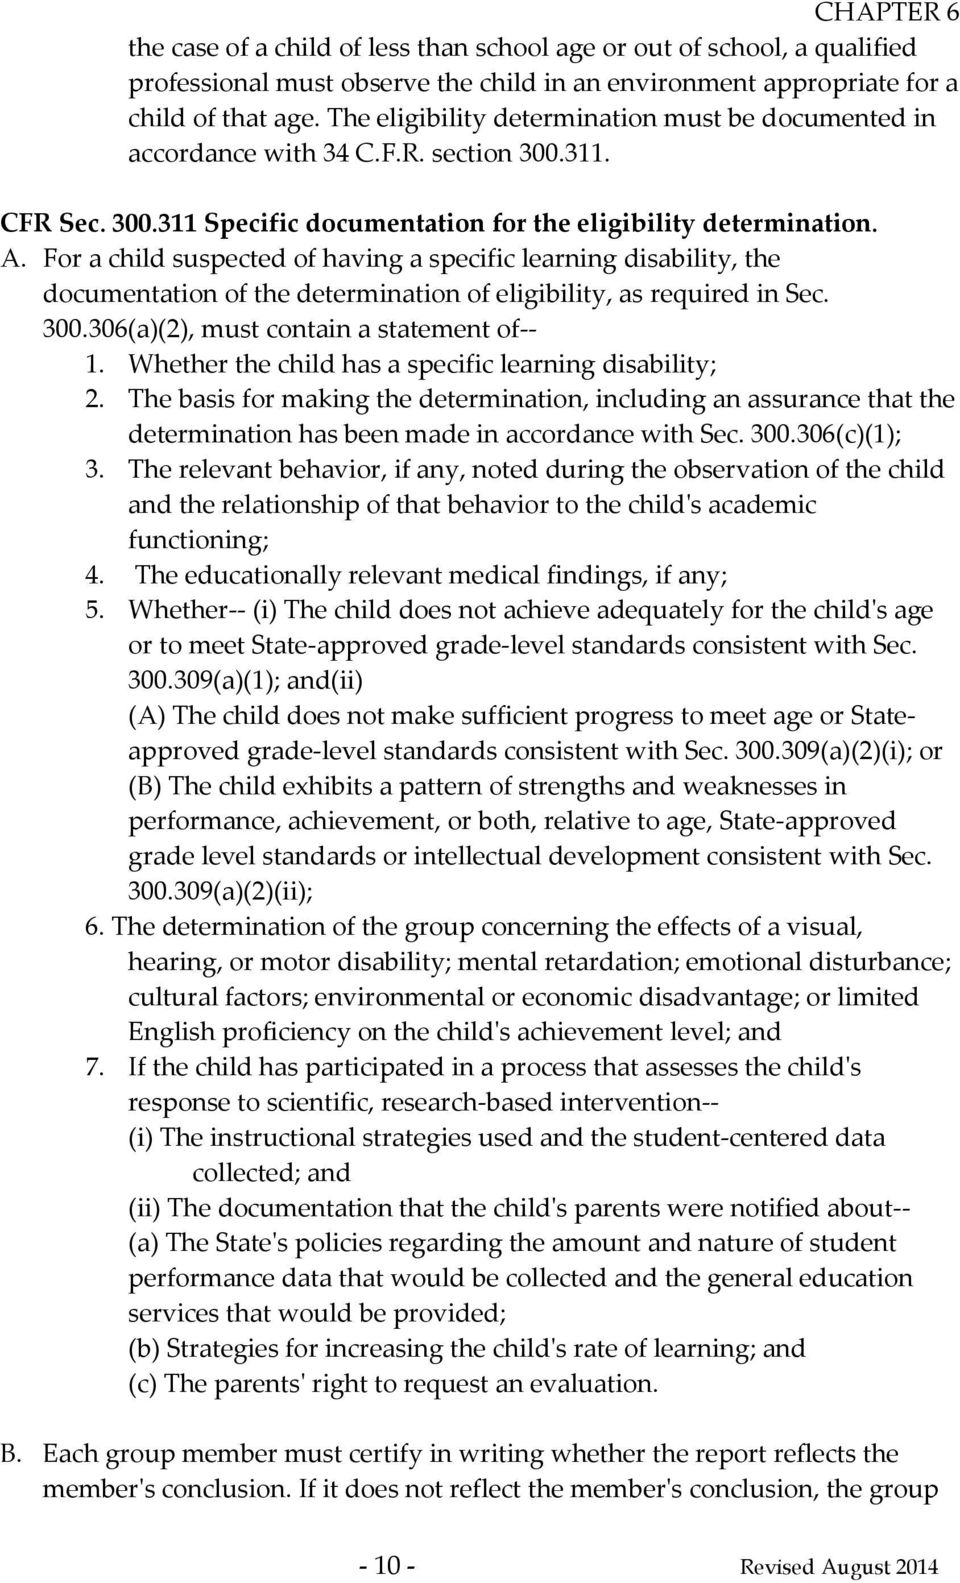 For a child suspected of having a specific learning disability, the documentation of the determination of eligibility, as required in Sec. 300.306(a)(2), must contain a statement of-- 1.